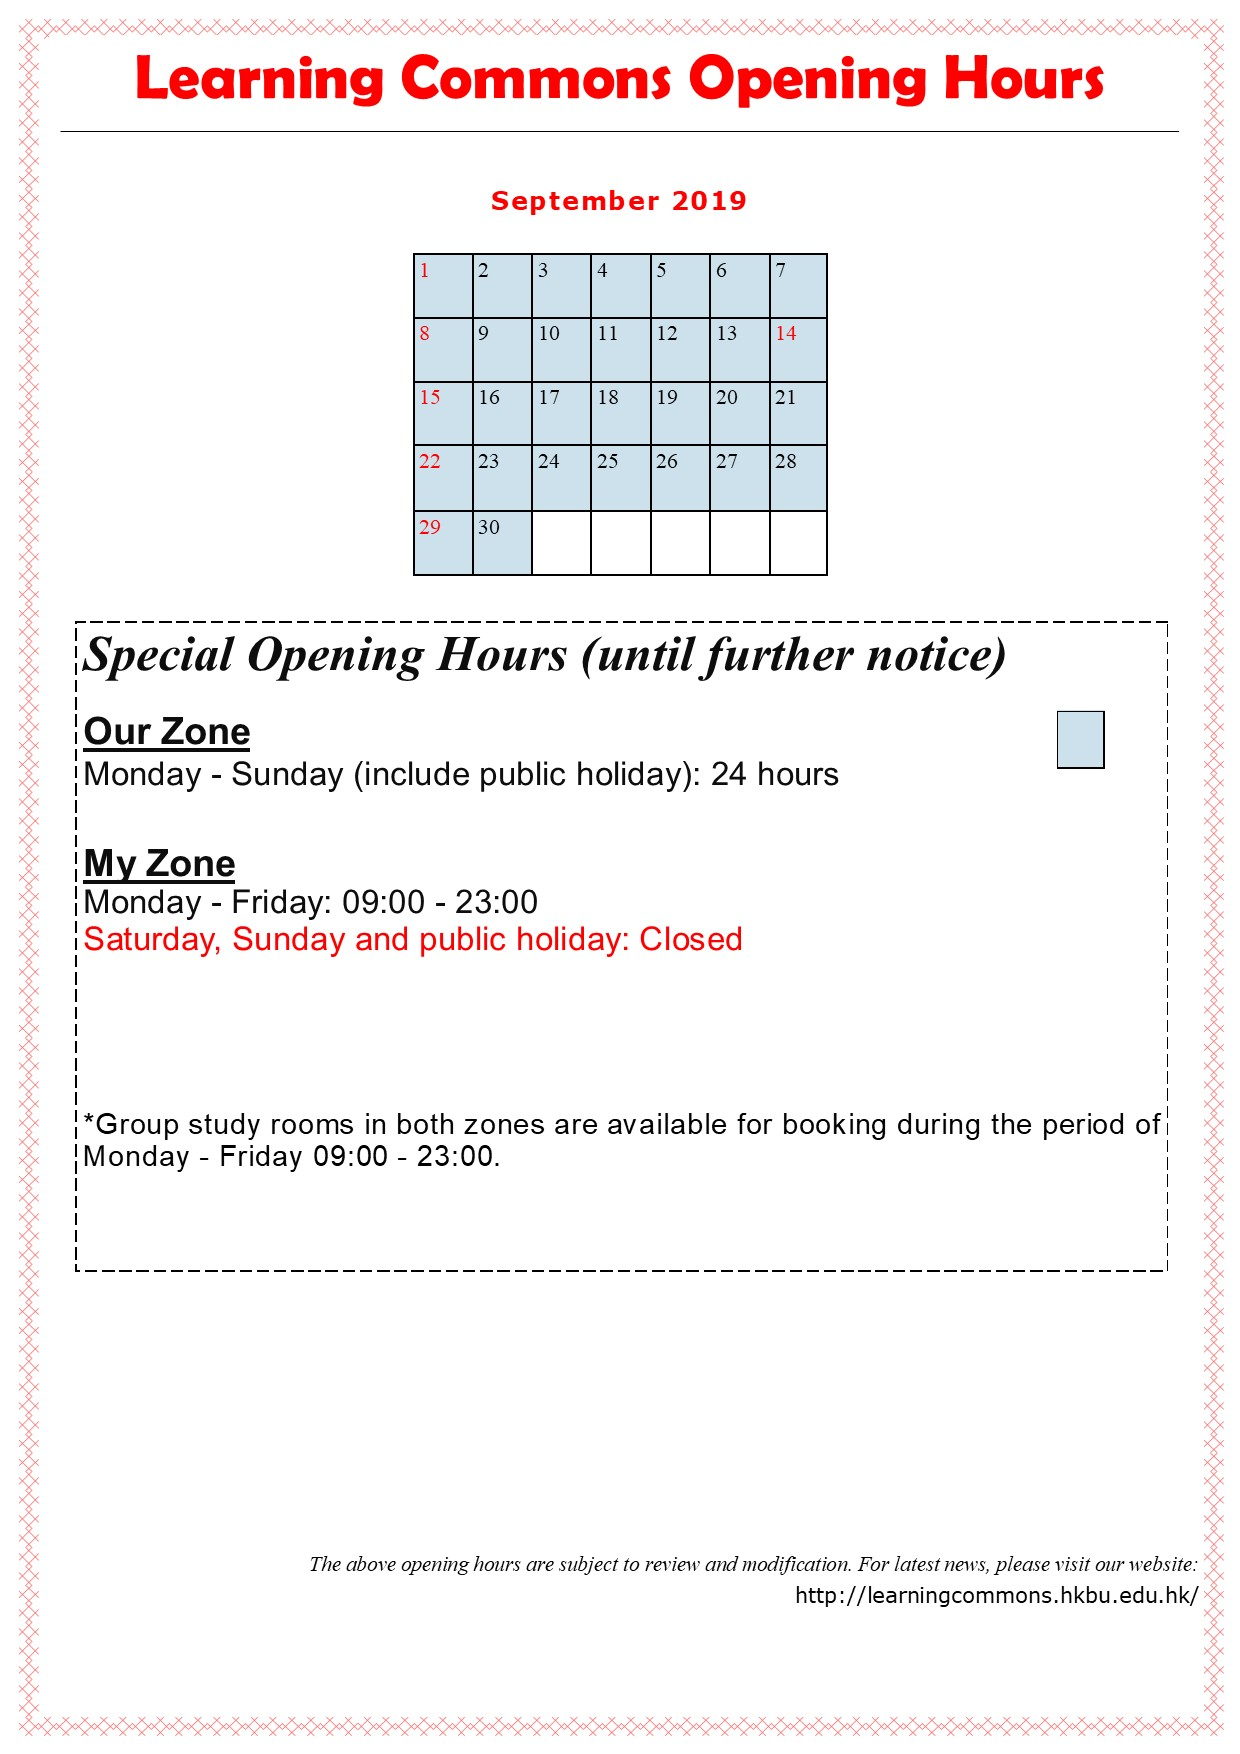 Learning Commons Special Opening Hour (Mon-Sun 24 Hours)